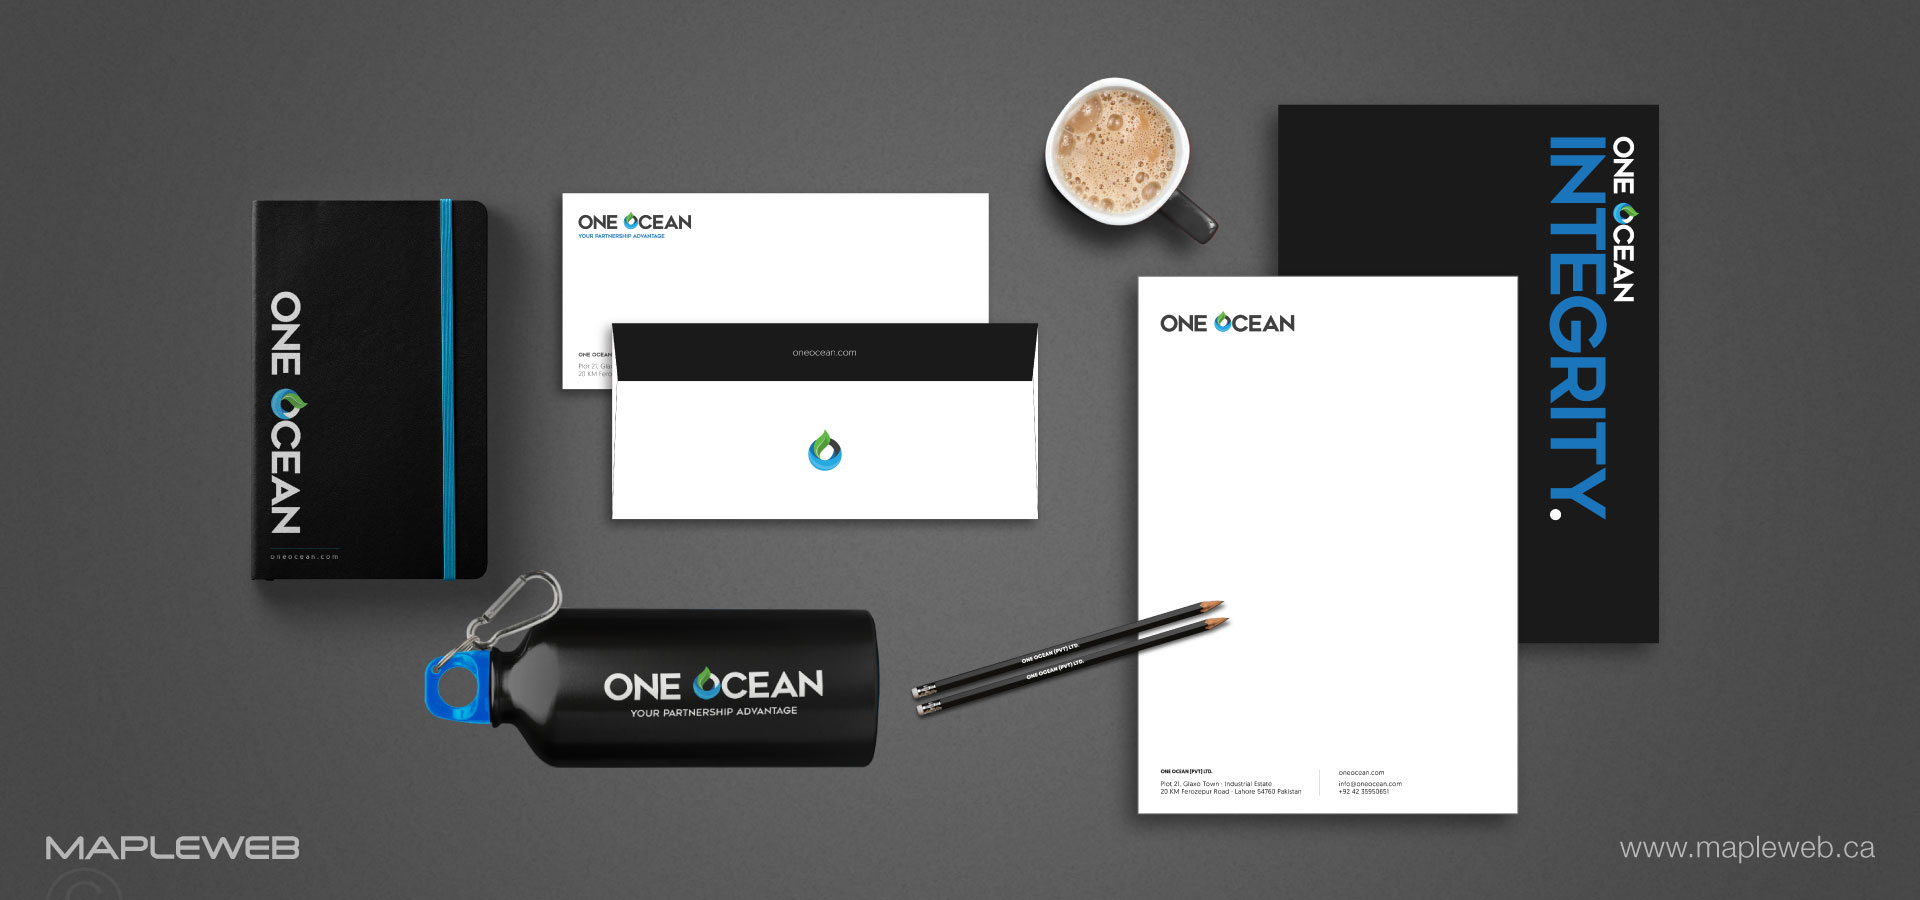 one-ocean-brand-logo-design-by-mapleweb-vancouver-canada-staionery-mock